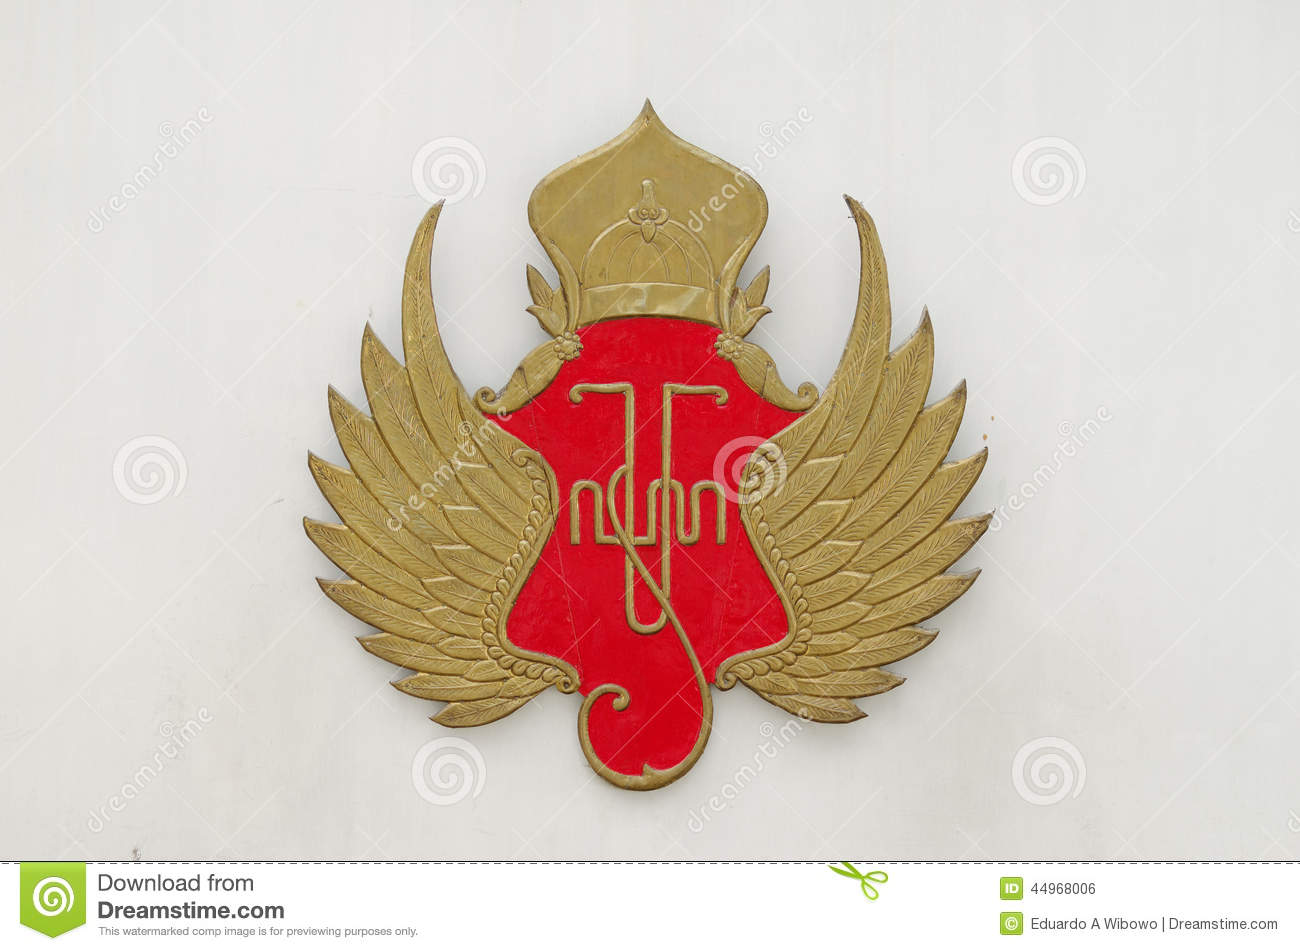 The Symbol Of Yogyakarta Sultanate Stock Photo Image Of Gedhong